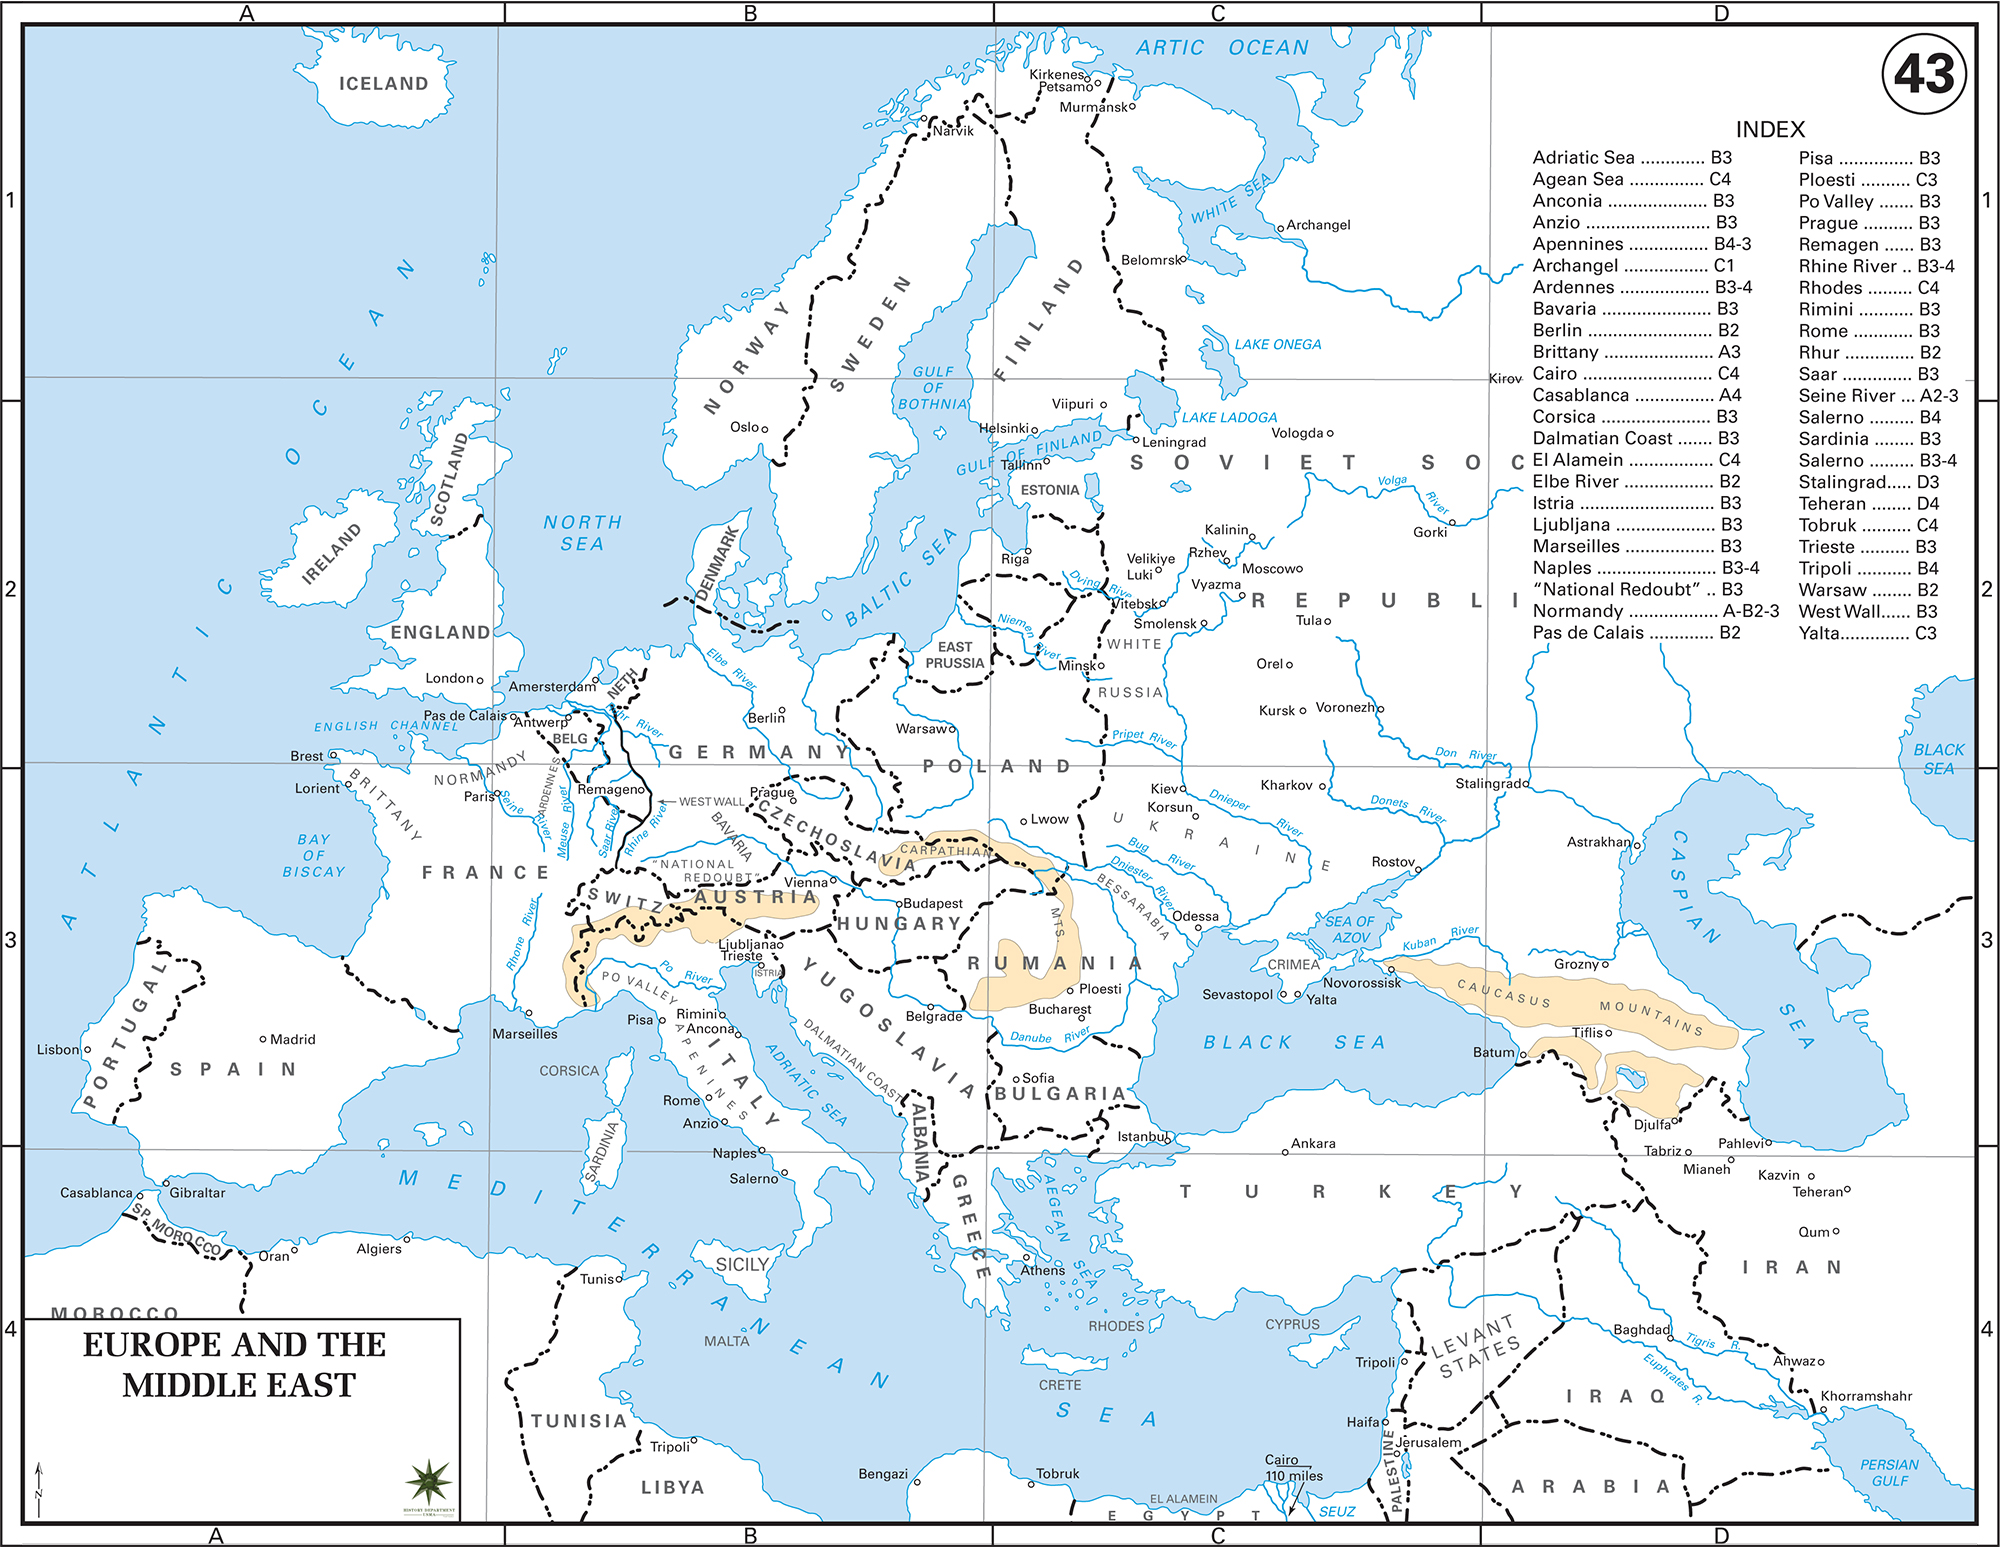 Map of Europe and the Middle East 1943